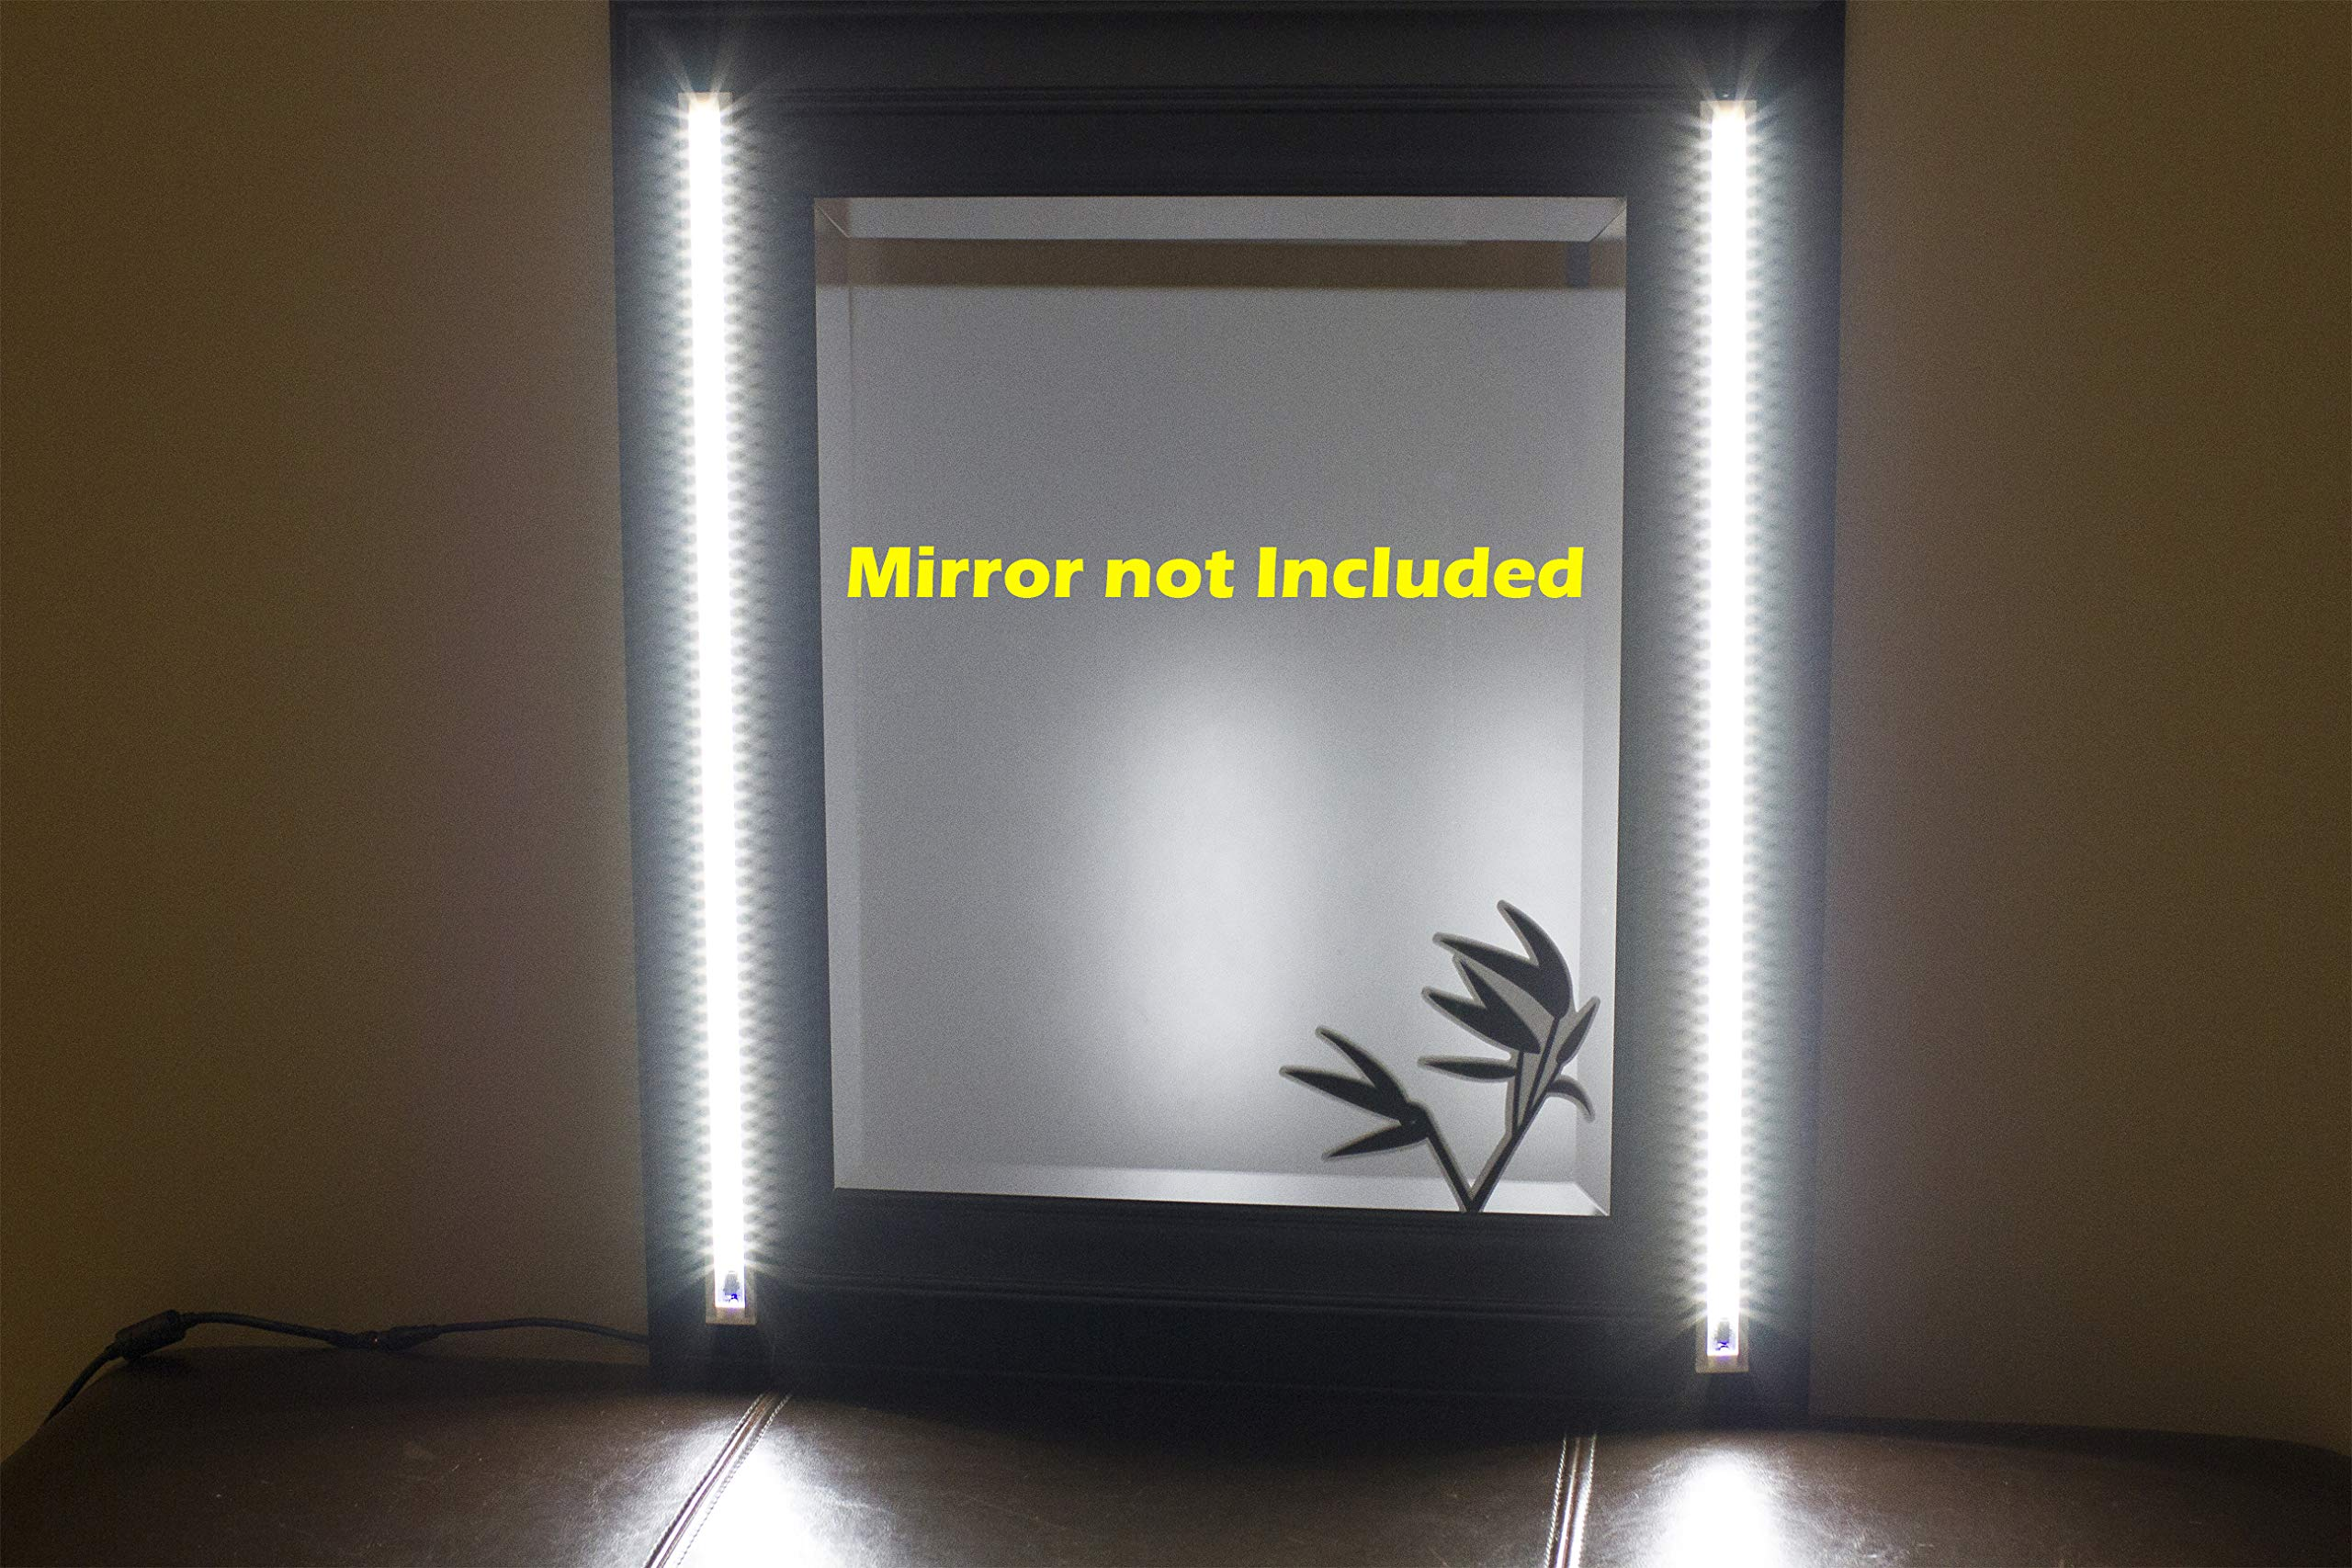 MAKE UP MIRROR LED light white color Dual 2ft VANITY MIRROR LIGHT SET WITH UL Power adapter